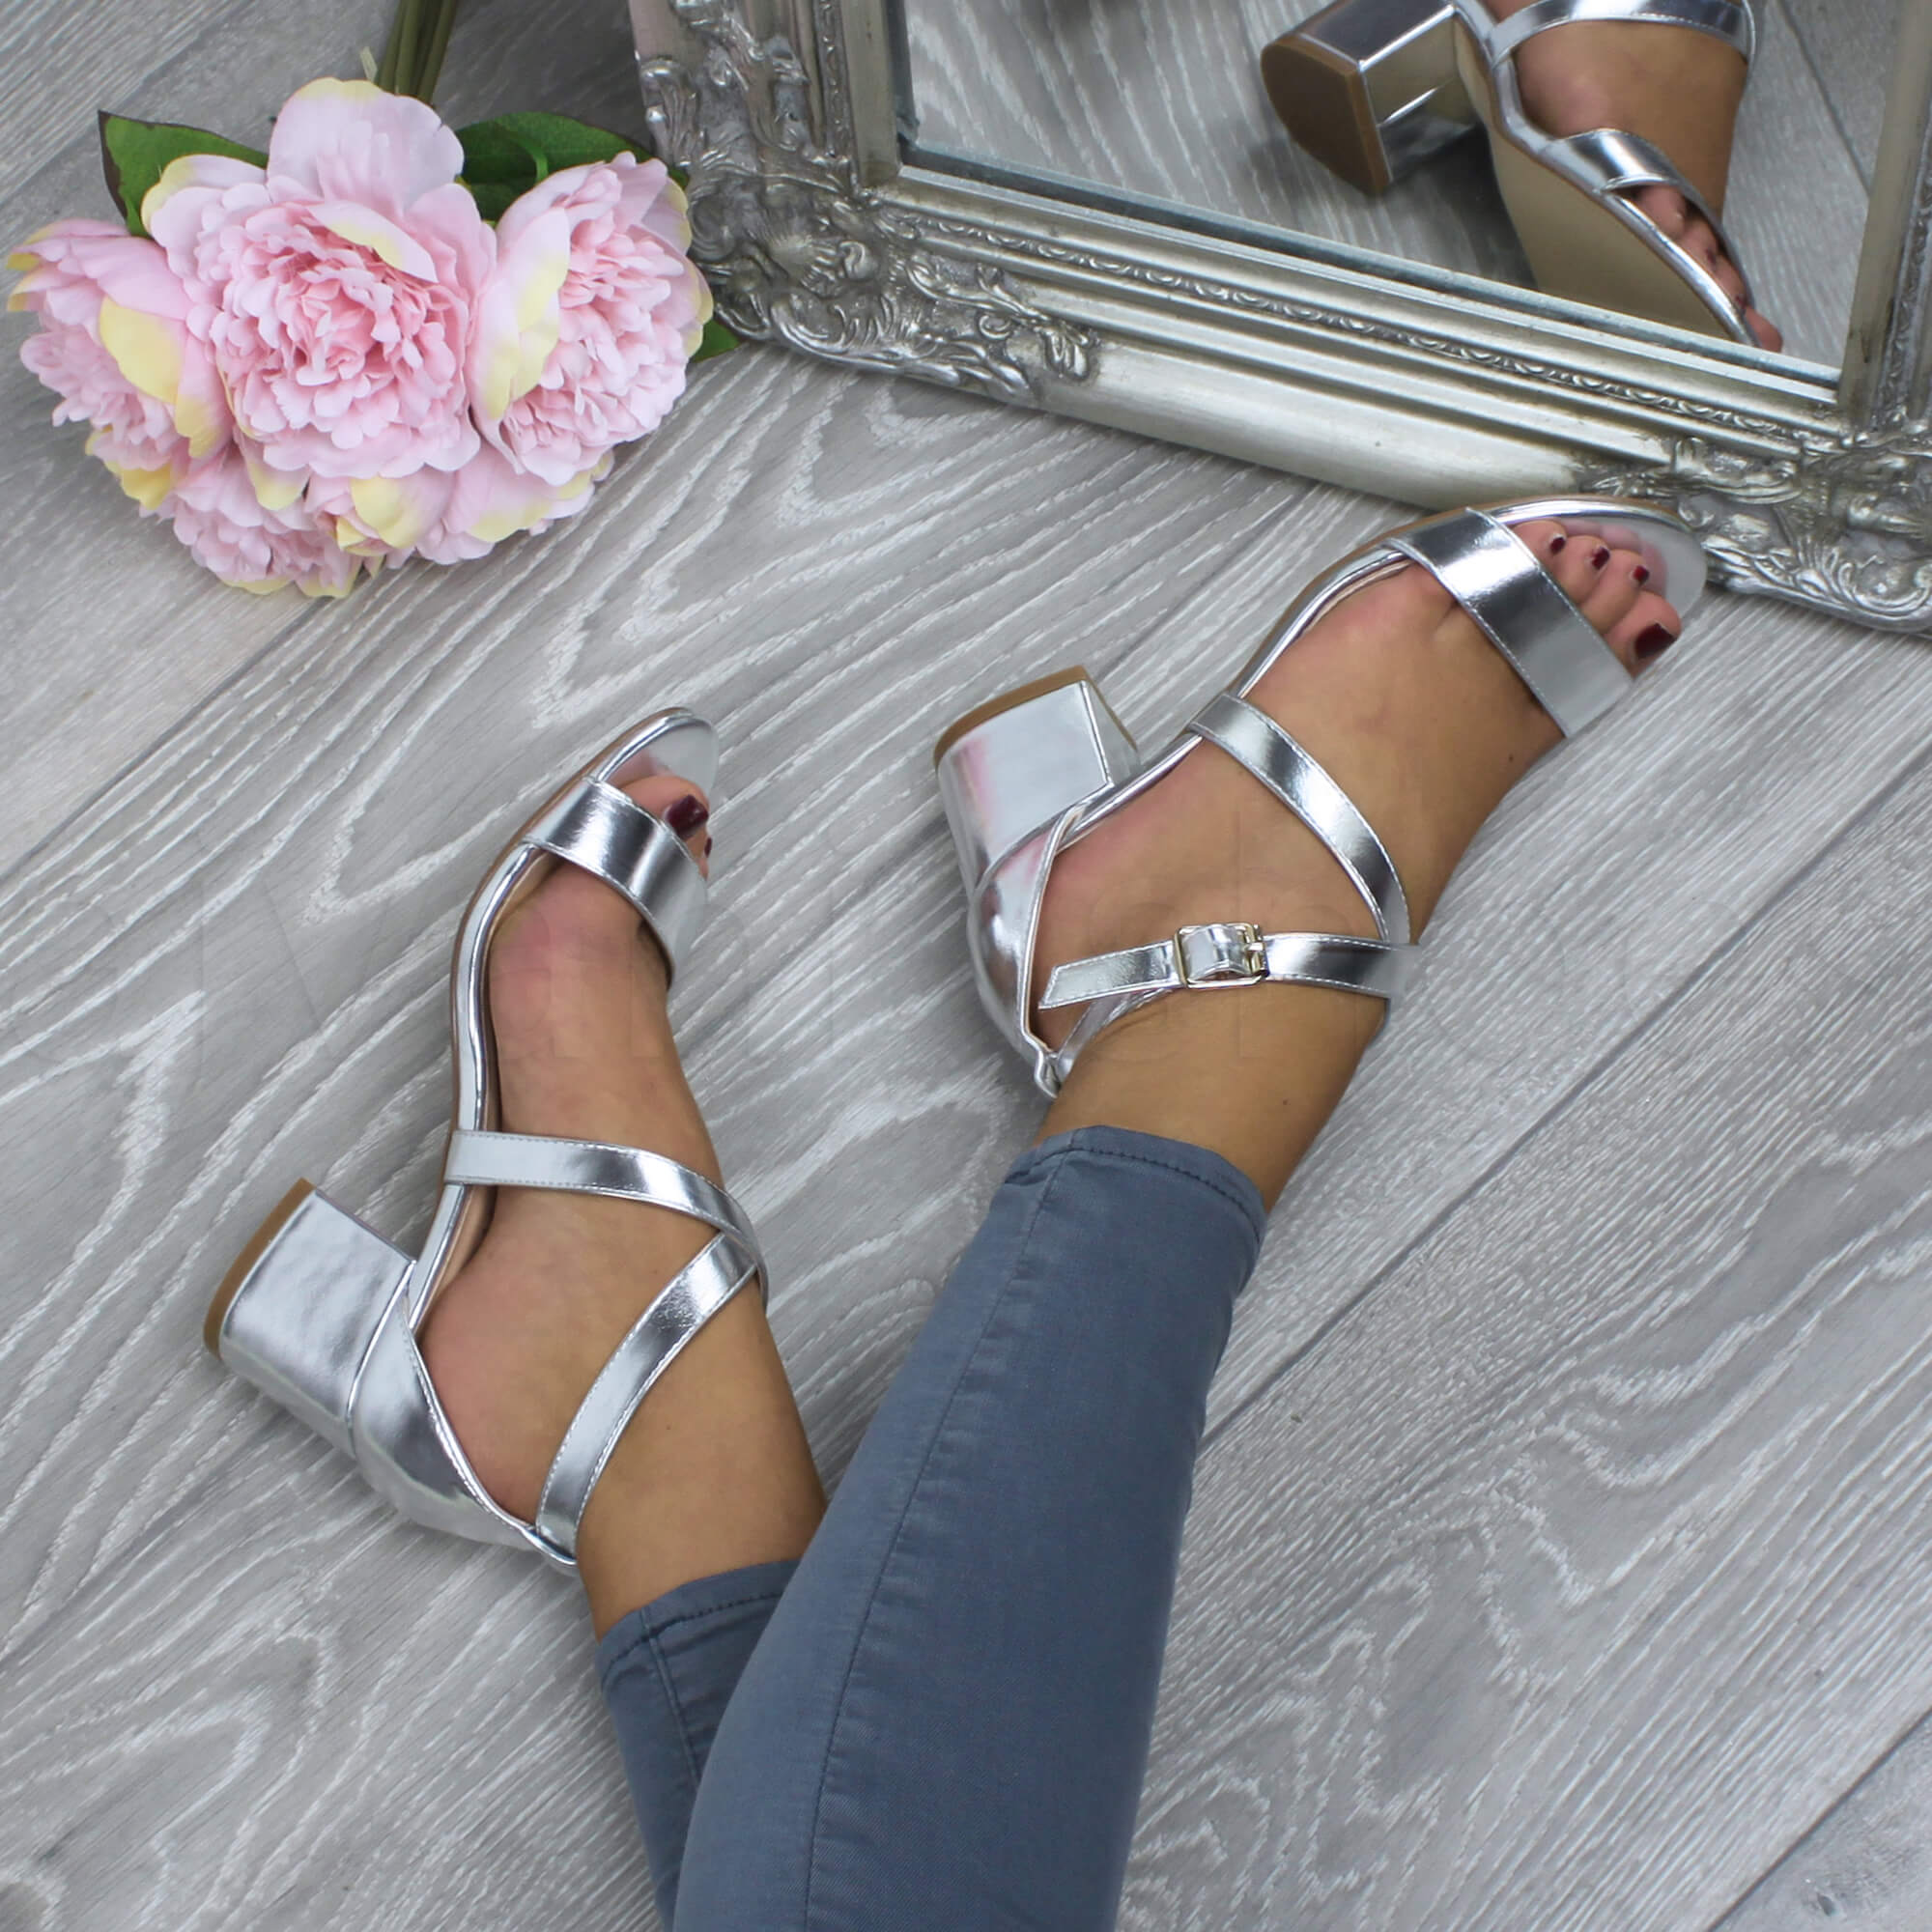 WOMENS-LADIES-MID-LOW-BLOCK-HEEL-CROSS-STRAPS-PARTY-STRAPPY-SANDALS-SHOES-SIZE thumbnail 82